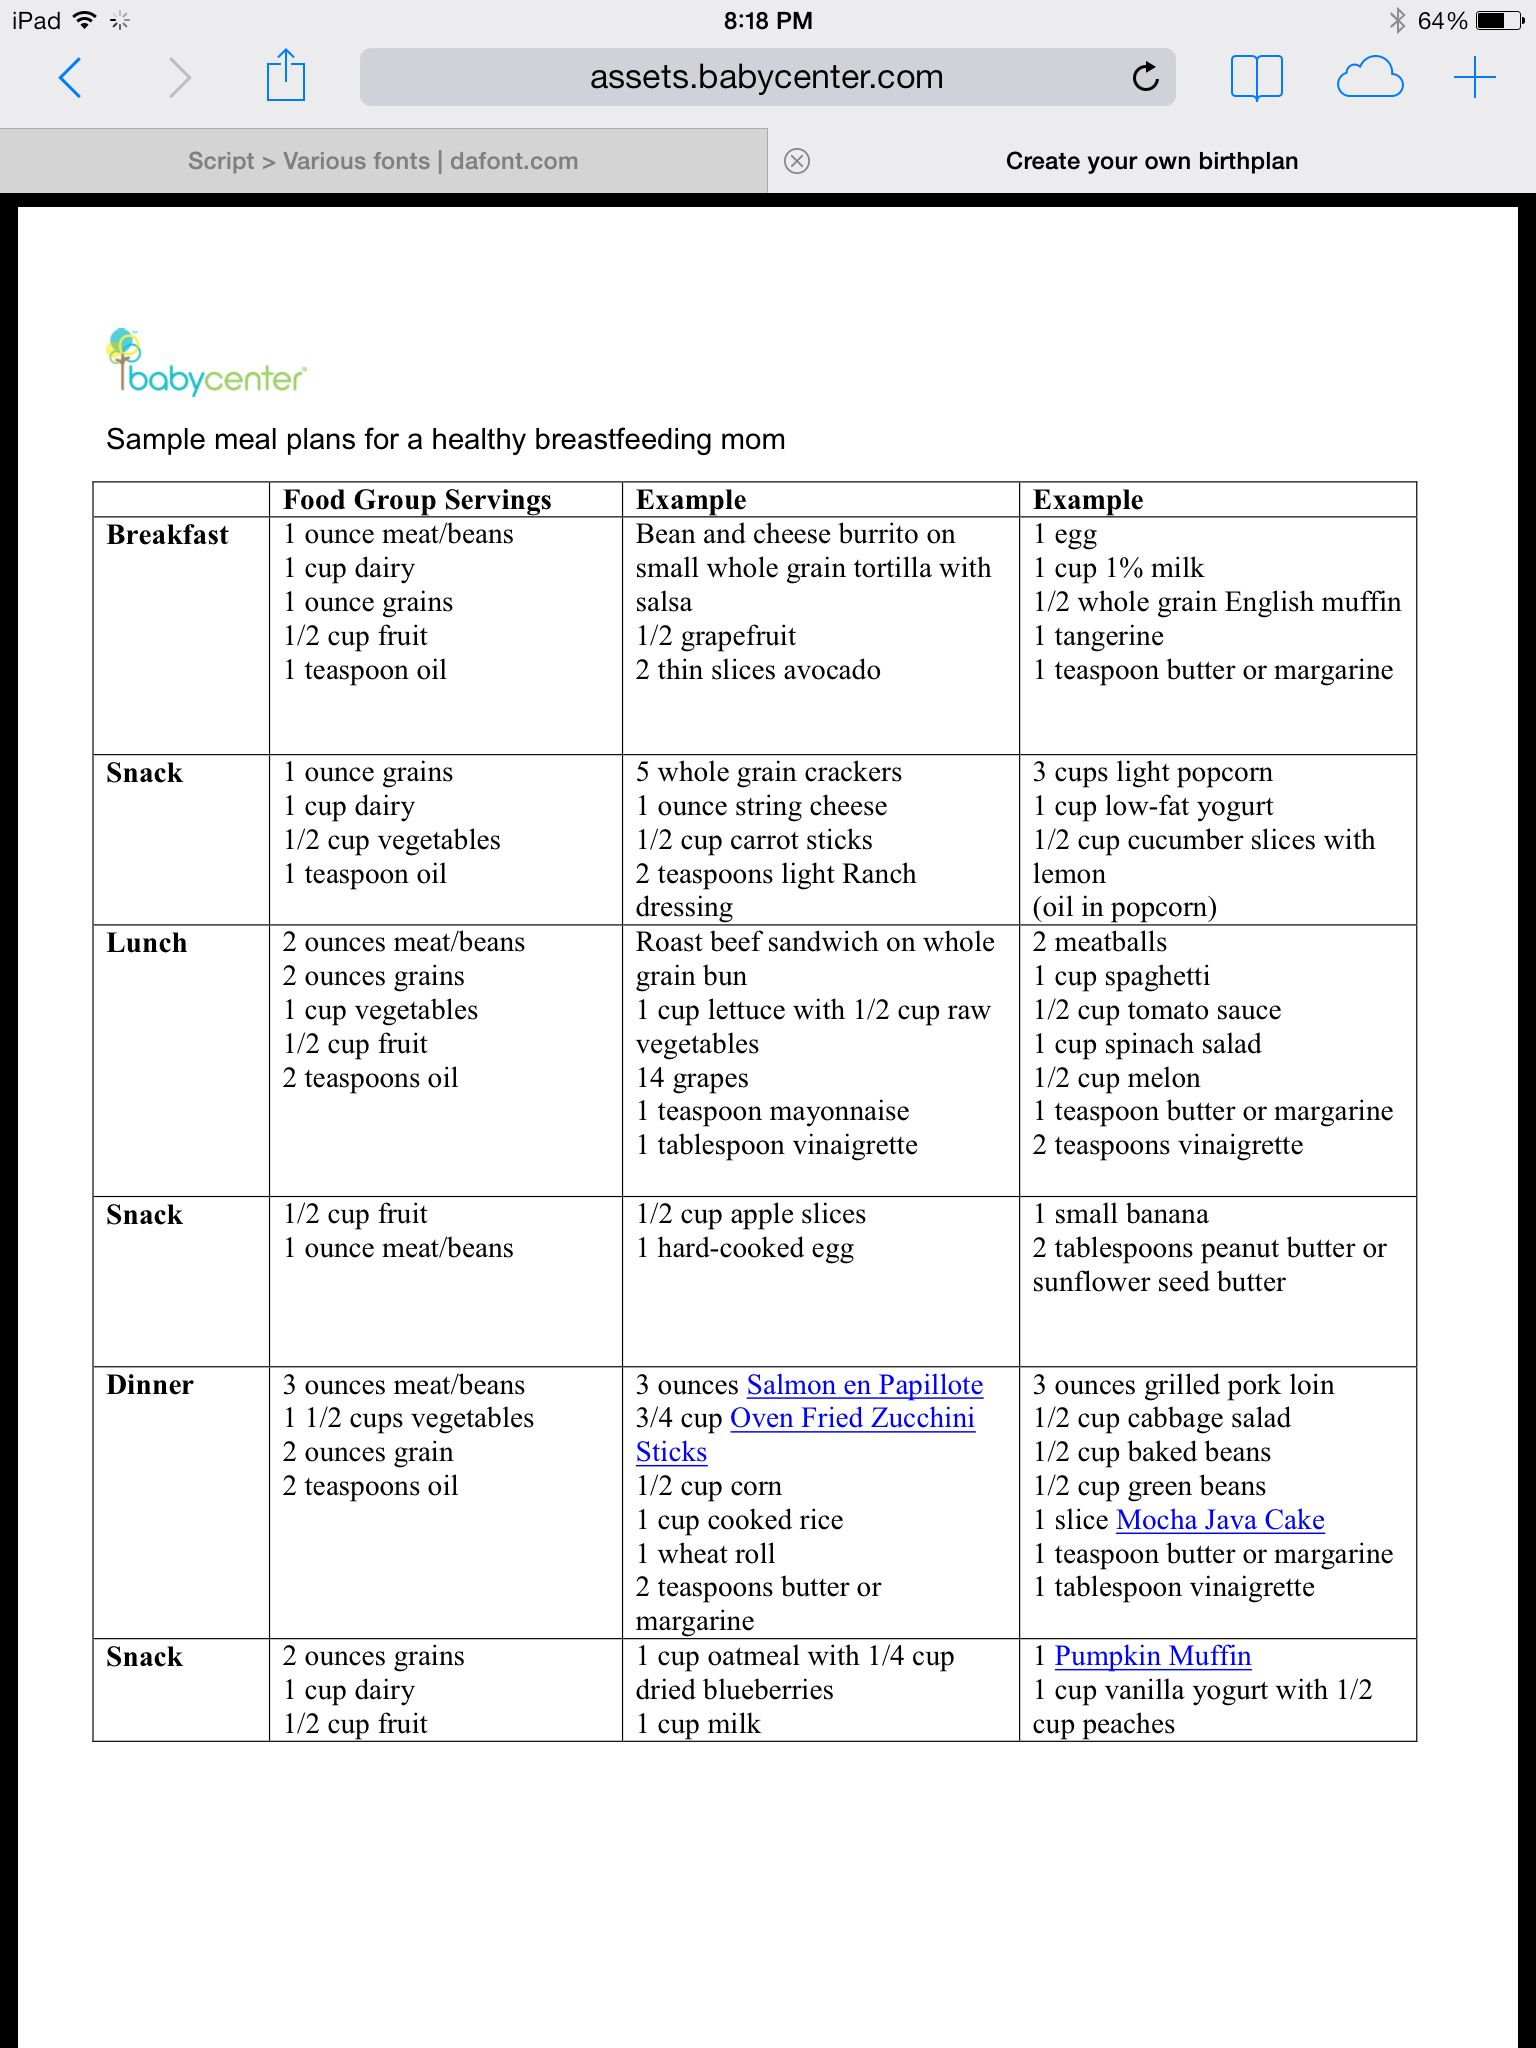 Sample Meal Plan For Breastfeeding Moms Healthy Breastfeeding Breastfeeding Diet Plan Breastfeeding Diet